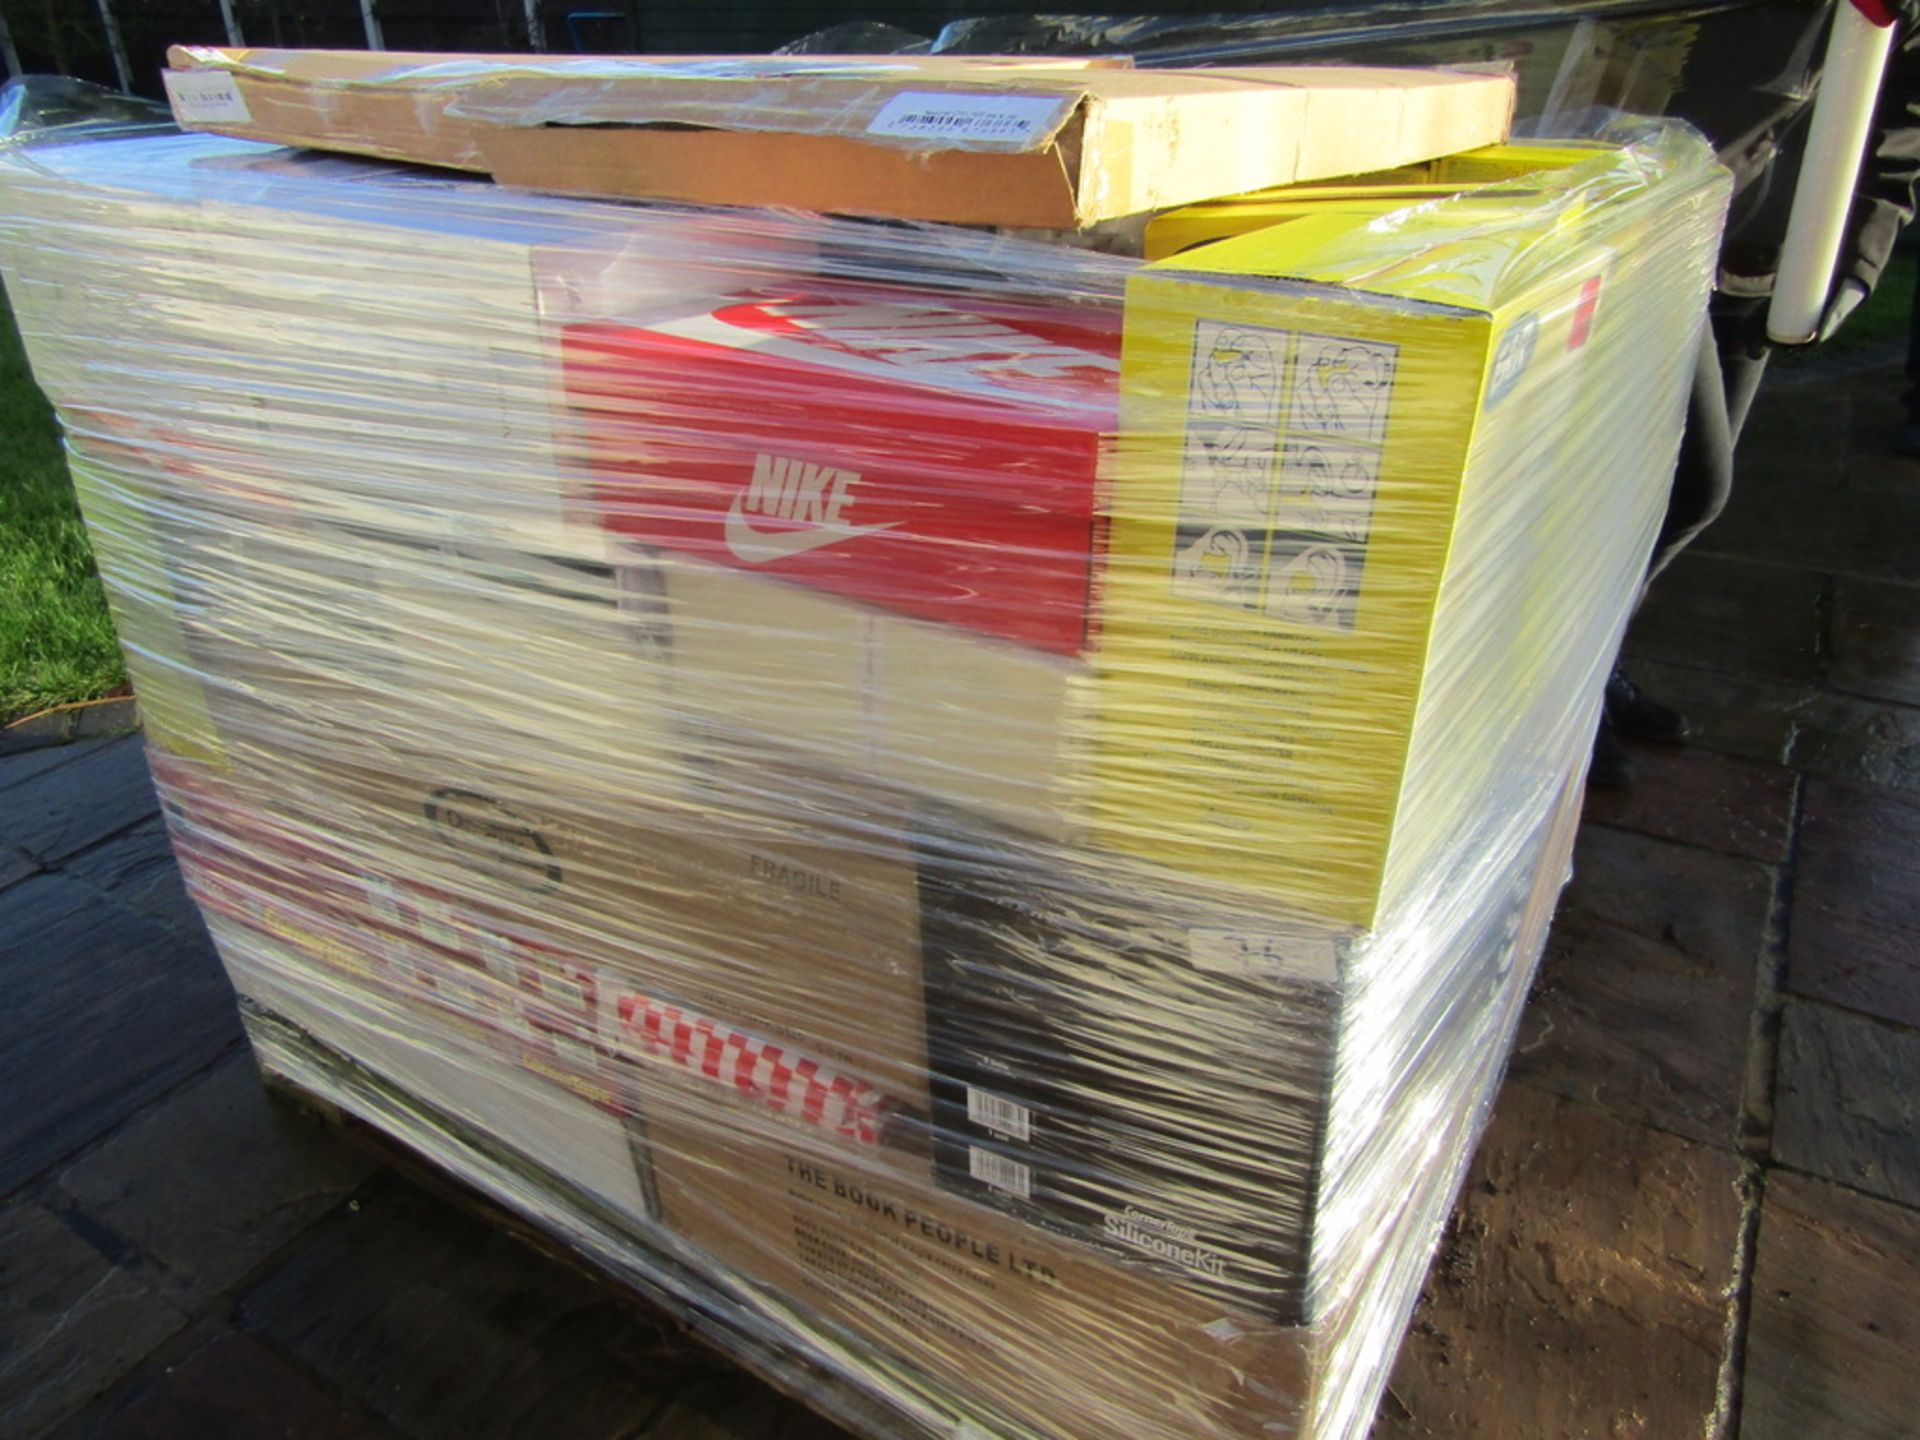 Pallet Load of Brand New Retail Stock. RRP. £8093.68 - Image 2 of 10